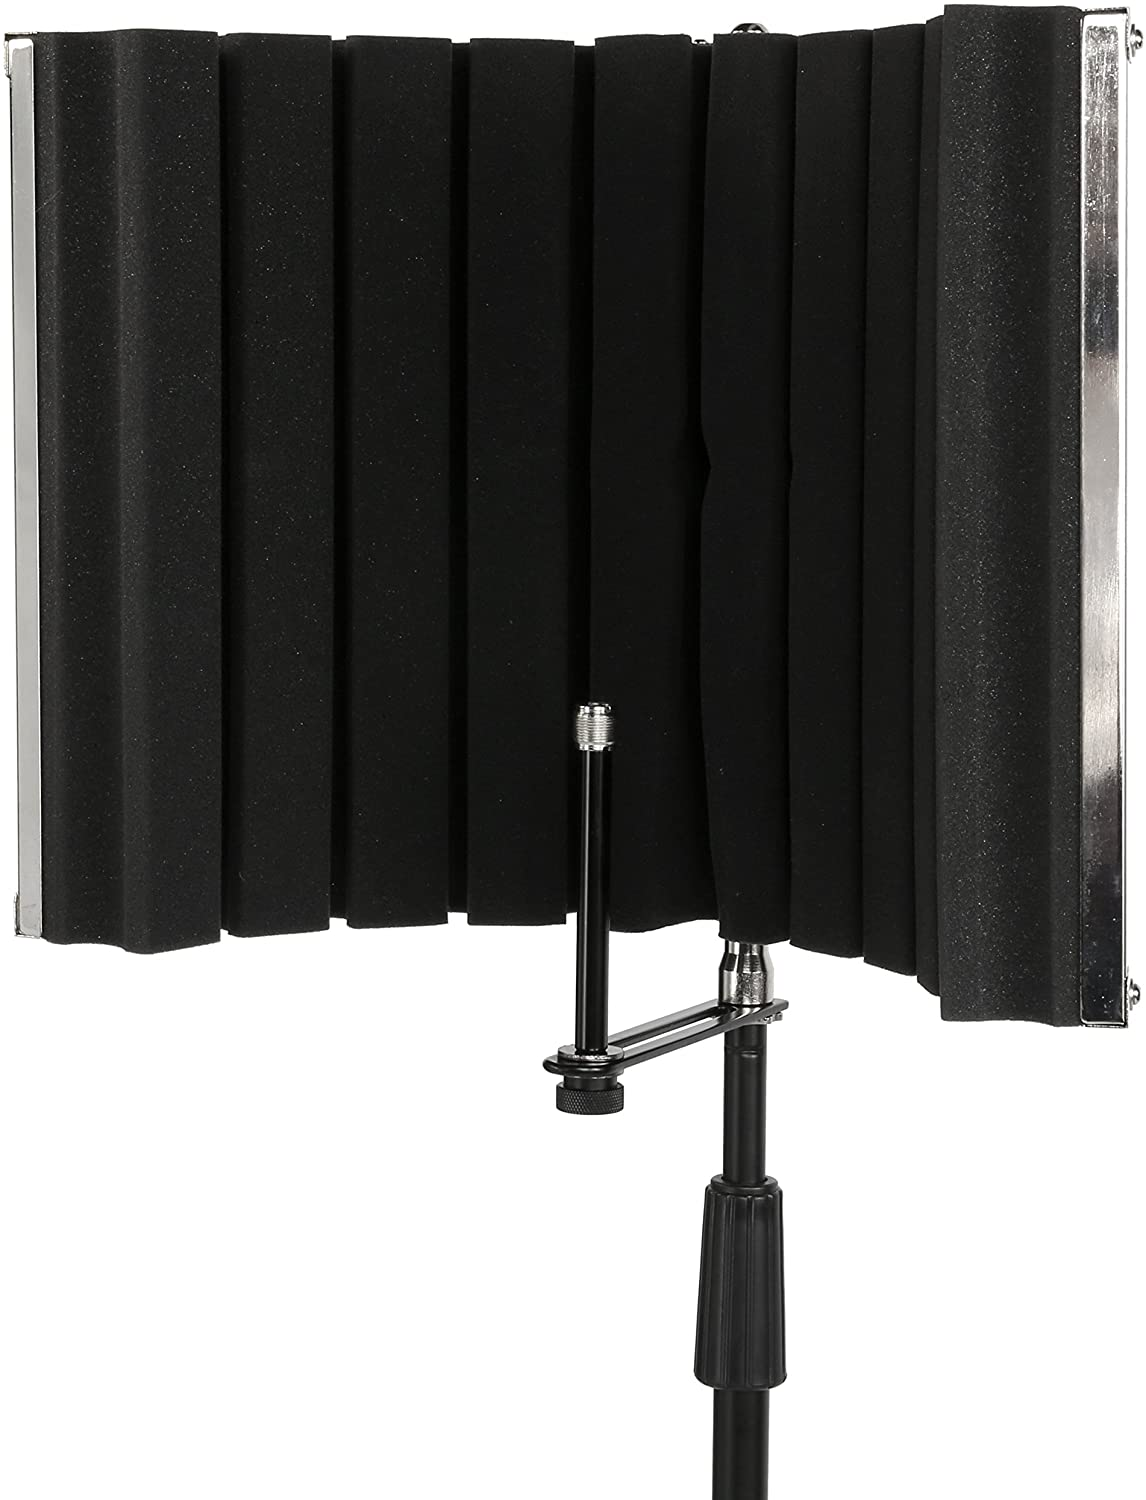 LyxPro - best microphone isolation shield